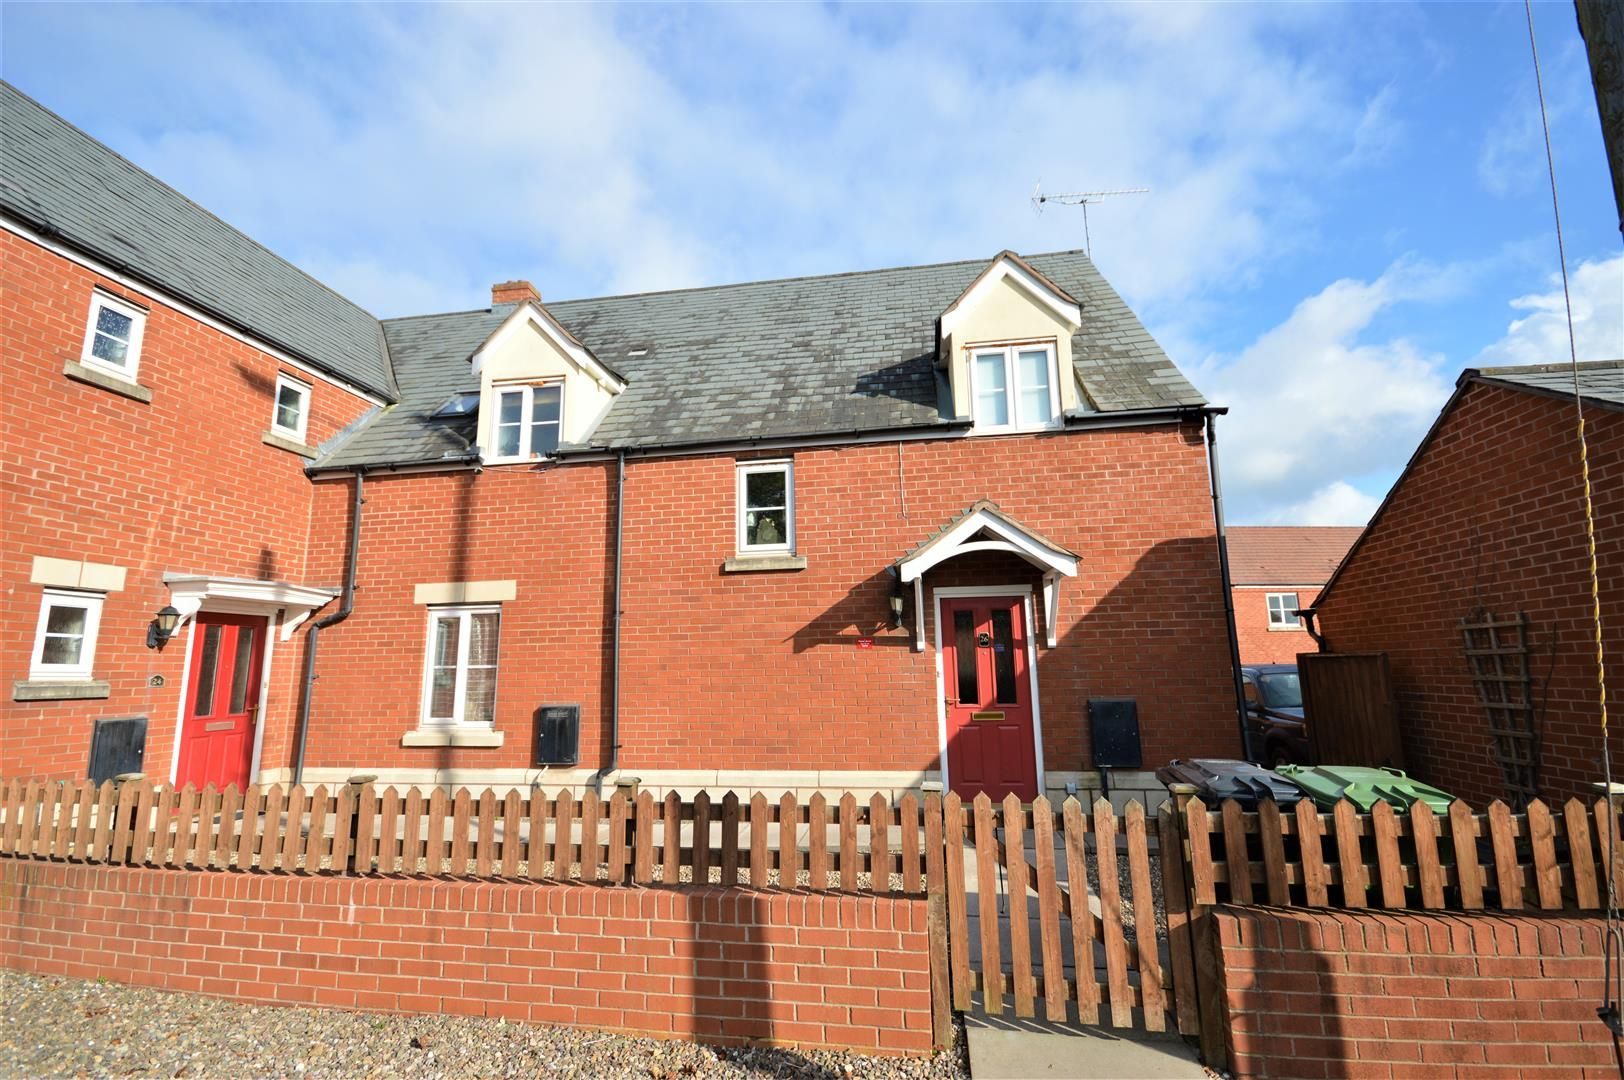 4 bed semi-detached for sale in Leominster 1